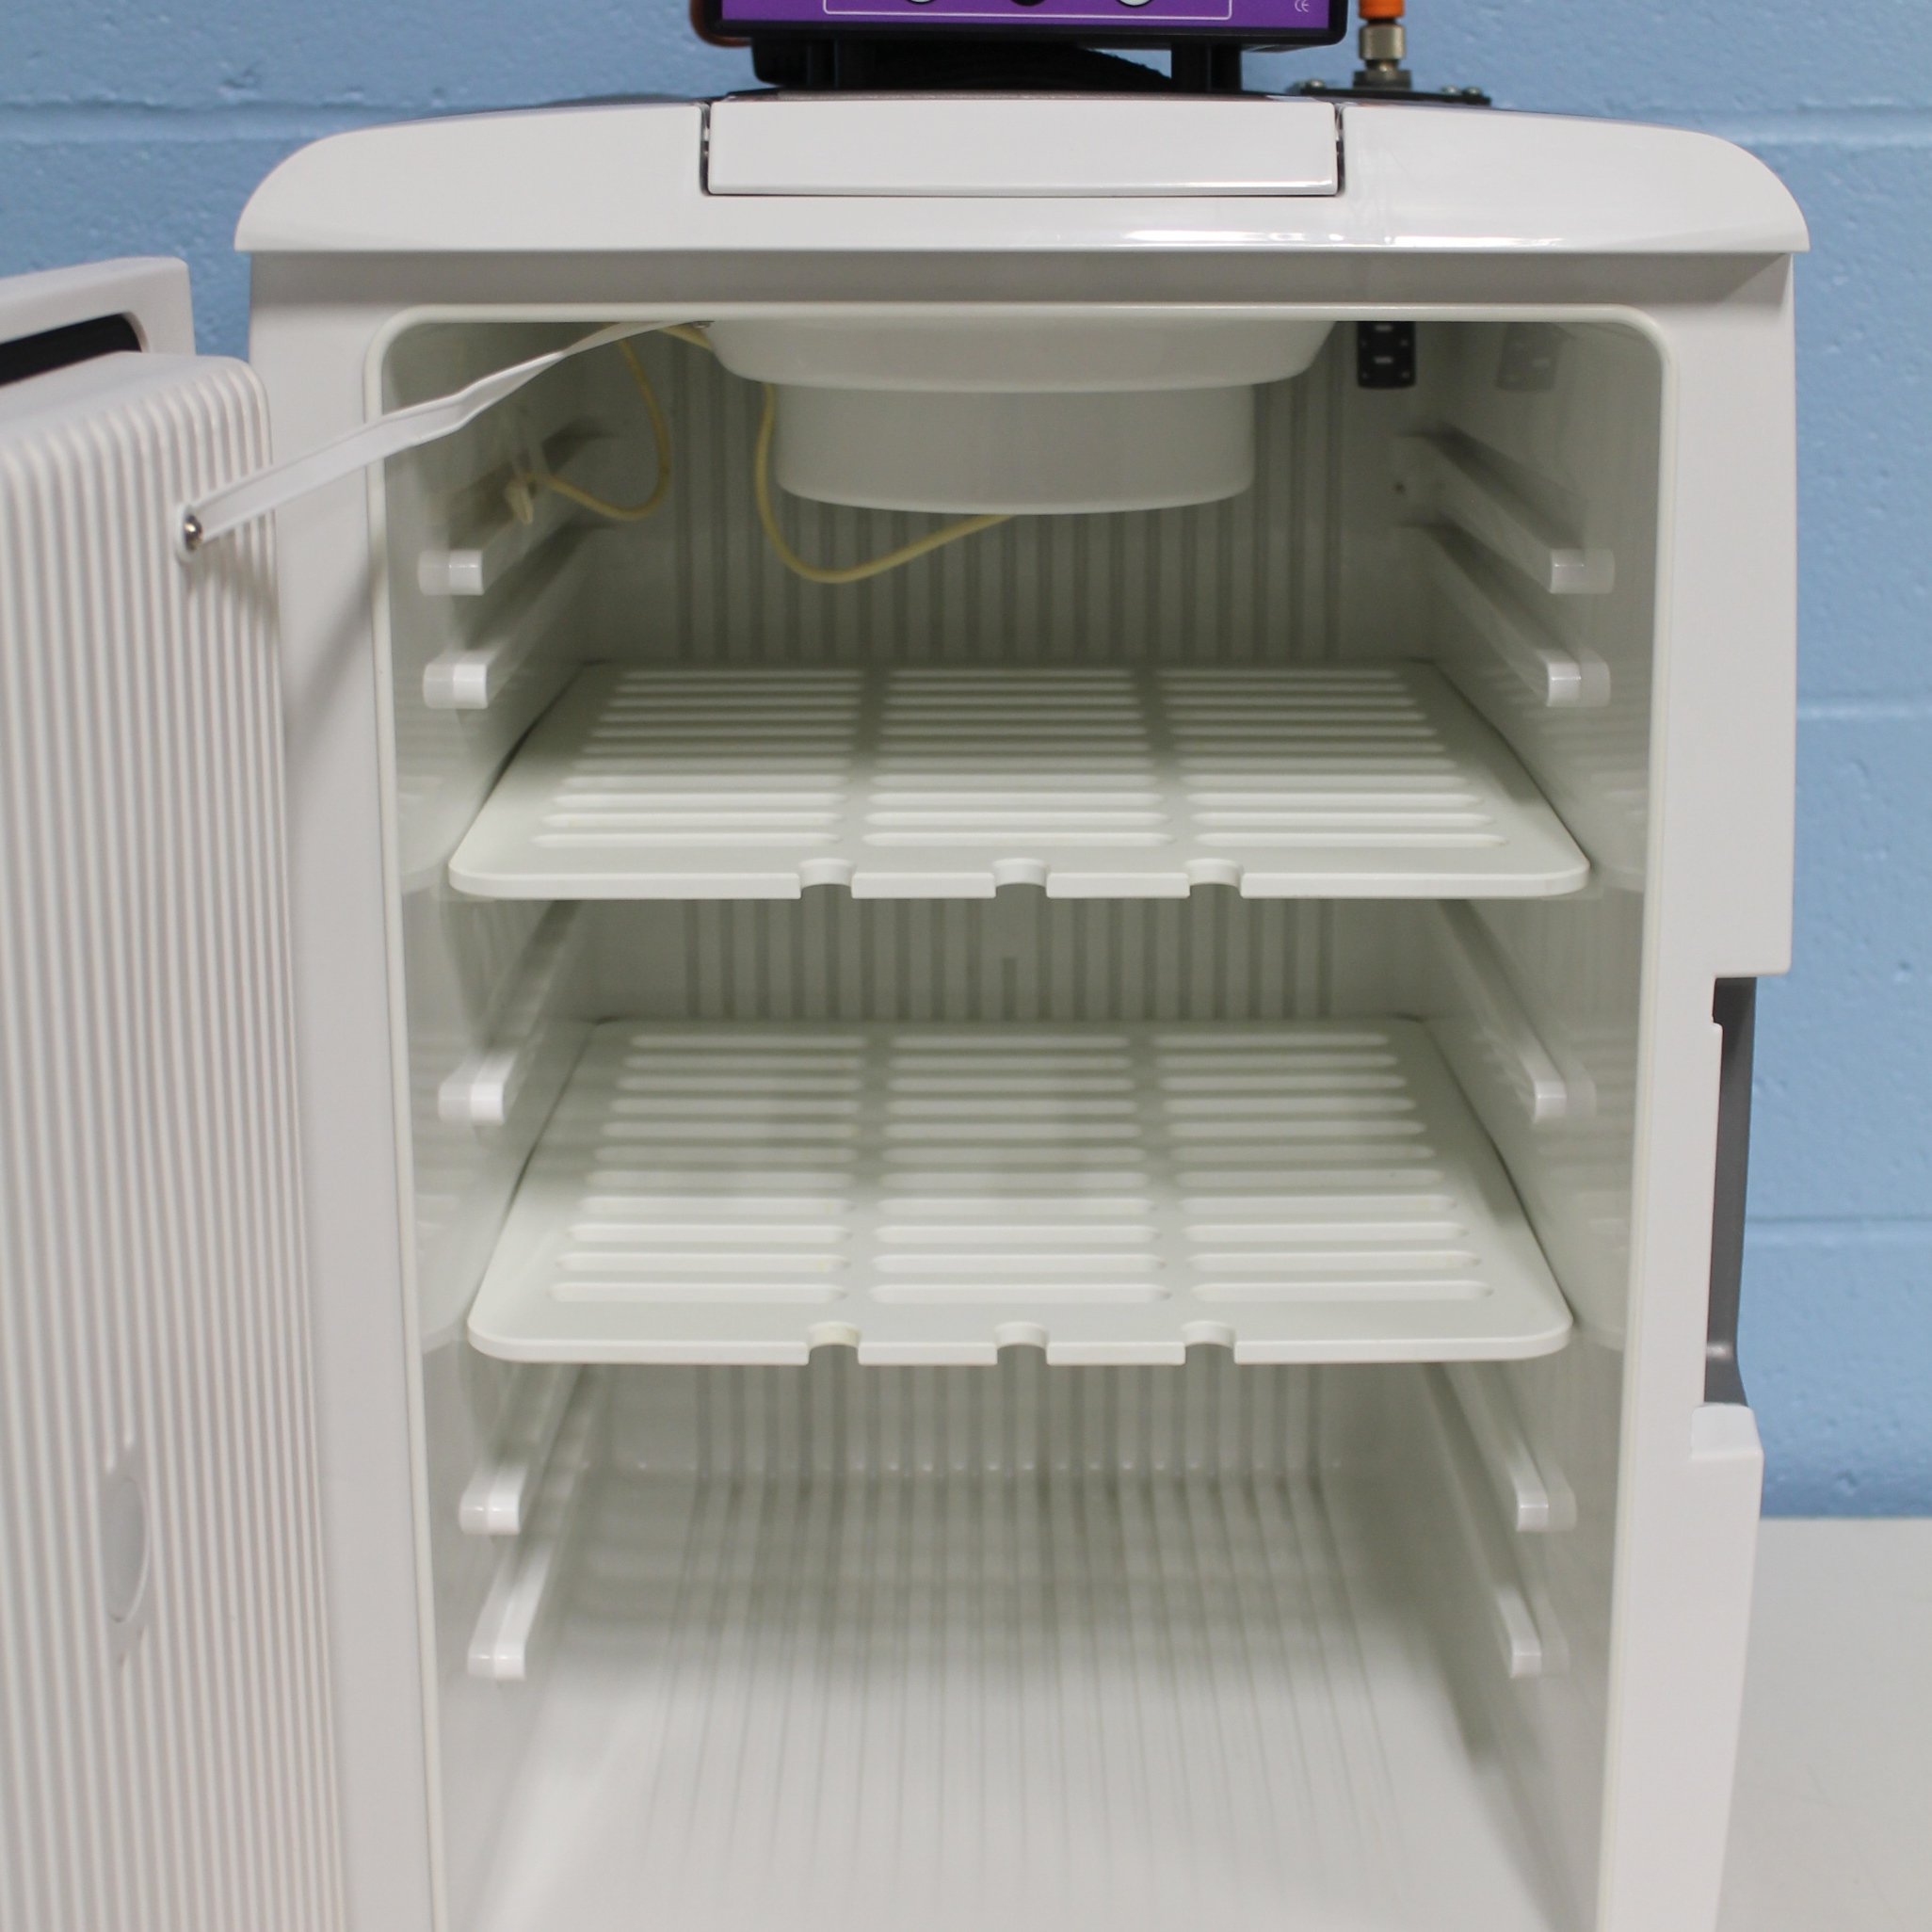 Tritech Research DigiTherm CO2 Heating/Cooling Incubator Model CC-40 Image